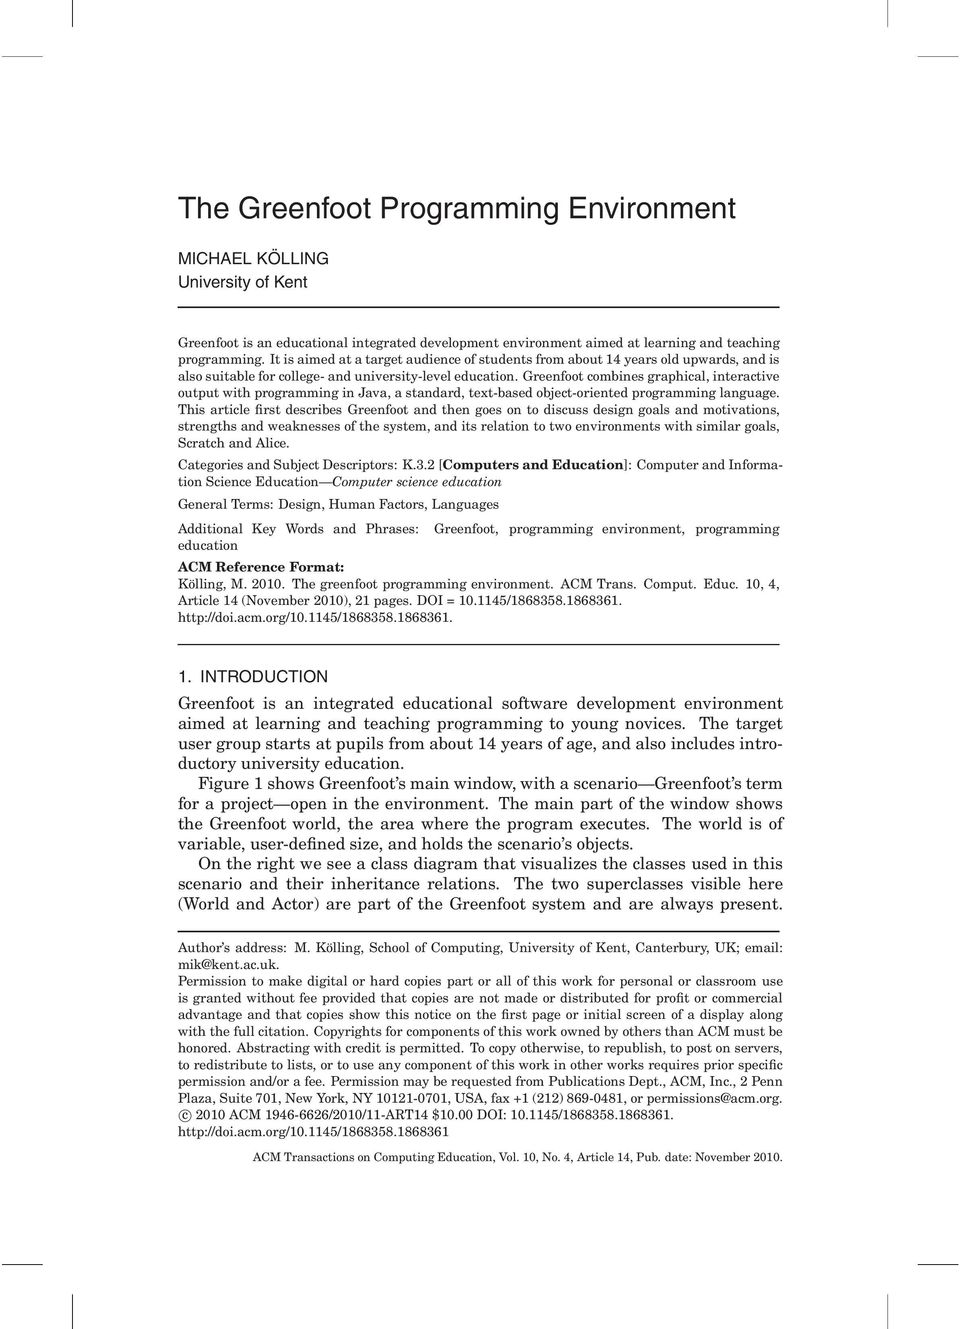 Greenfoot combines graphical, interactive output with programming in Java, a standard, text-based object-oriented programming language.